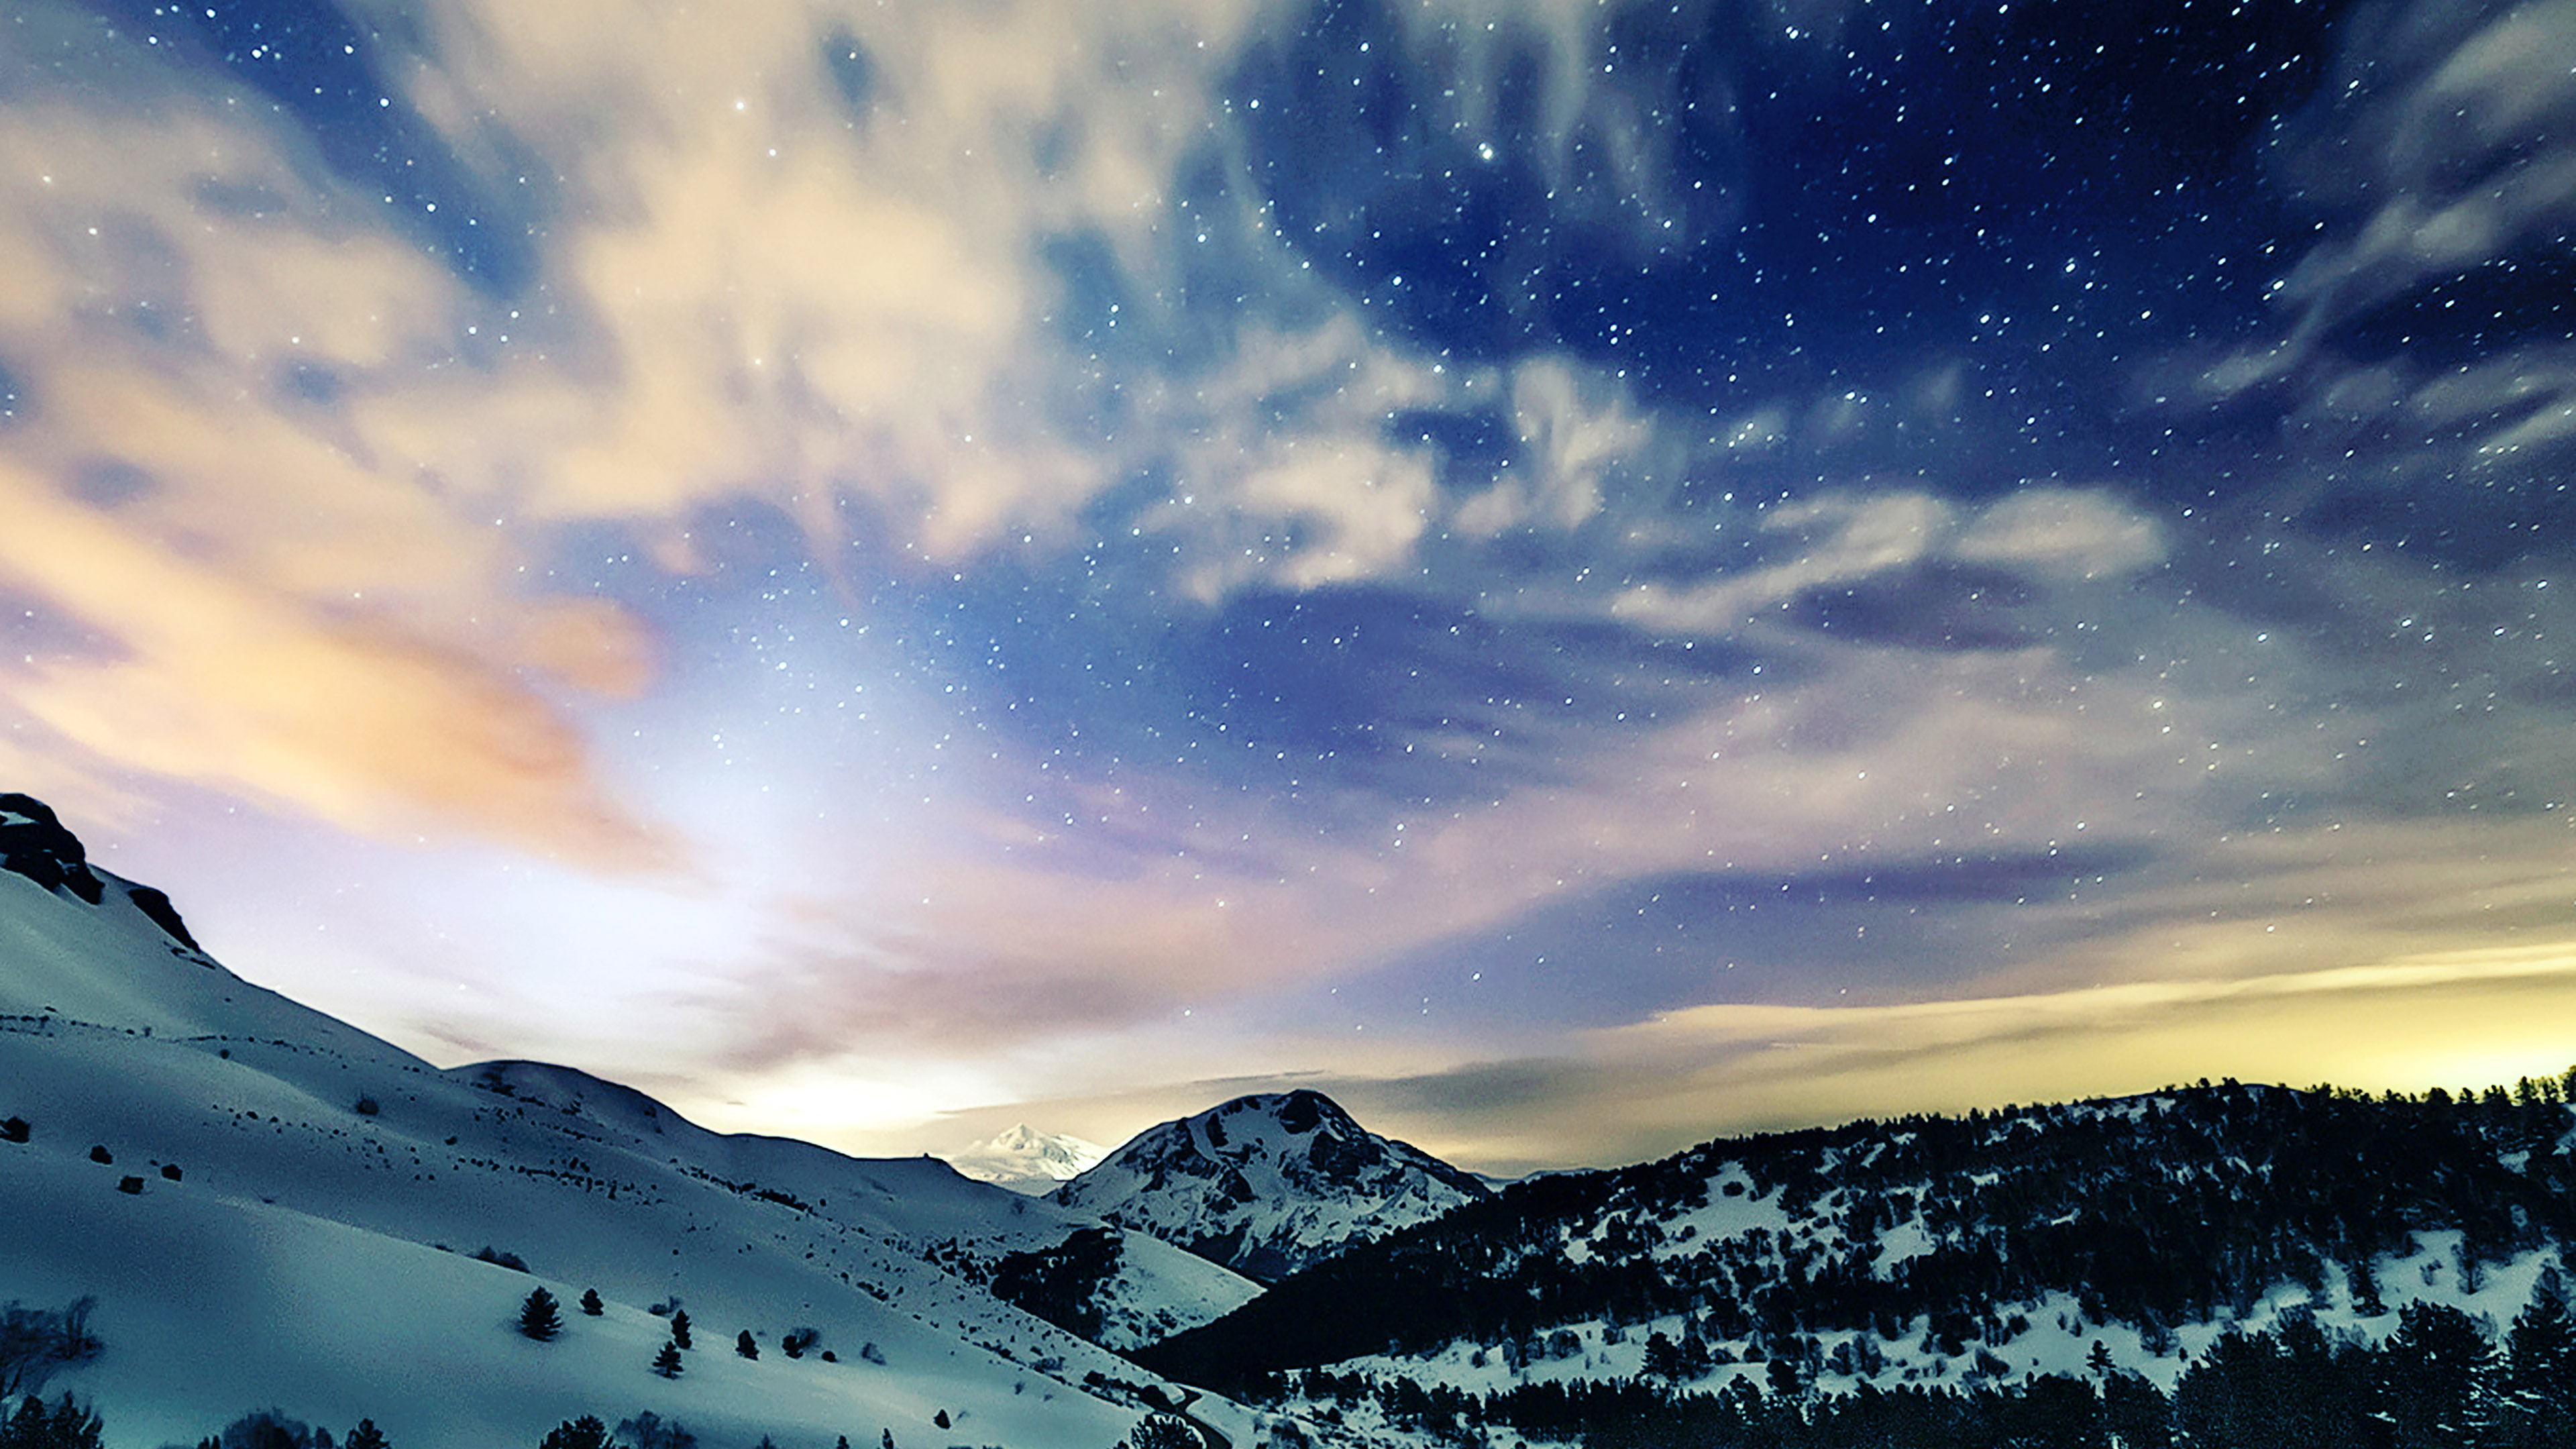 Fall And Spring Wallpaper Mk79 Aurora Star Sky Snow Night Mountain Winter Nature